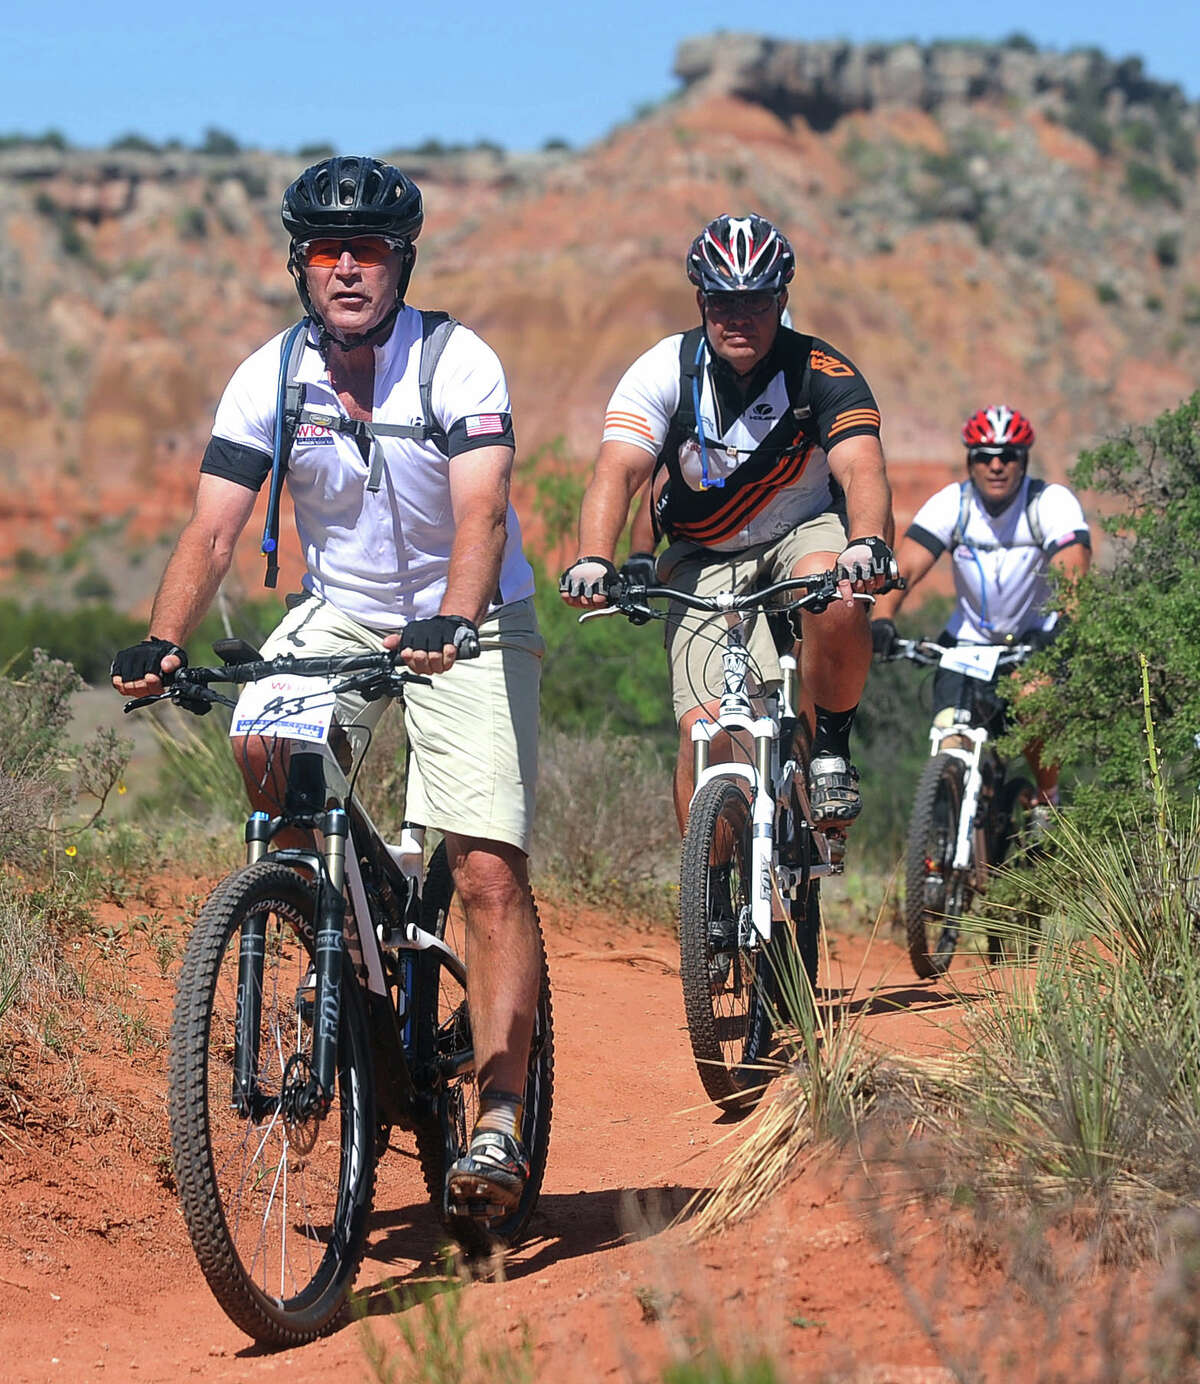 President George W. Bush leads a pack of riders on a trail during the second day of The Bush Center Warrior 100k, Friday, April 27, 2012 at Palo Duro Canyon State Park in Canyon, Texas.